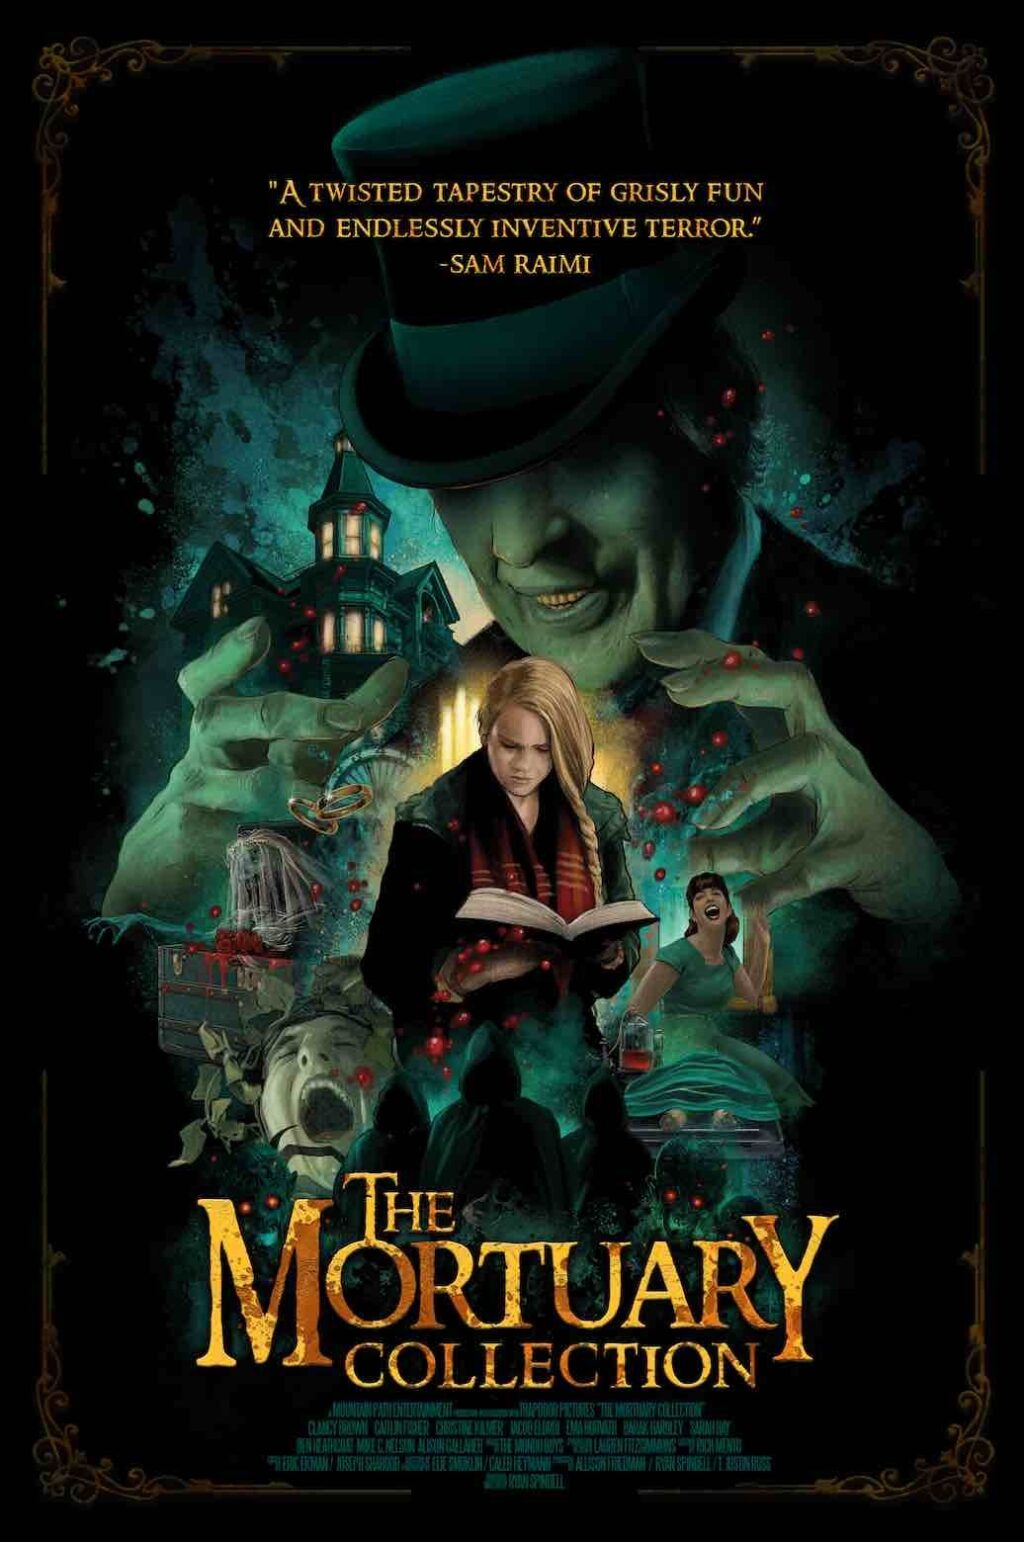 The Mortuary Collection 1024x1542 - New Trailer for Hit Horror Anthology THE MORTUARY COLLECTION on Shudder October 15th